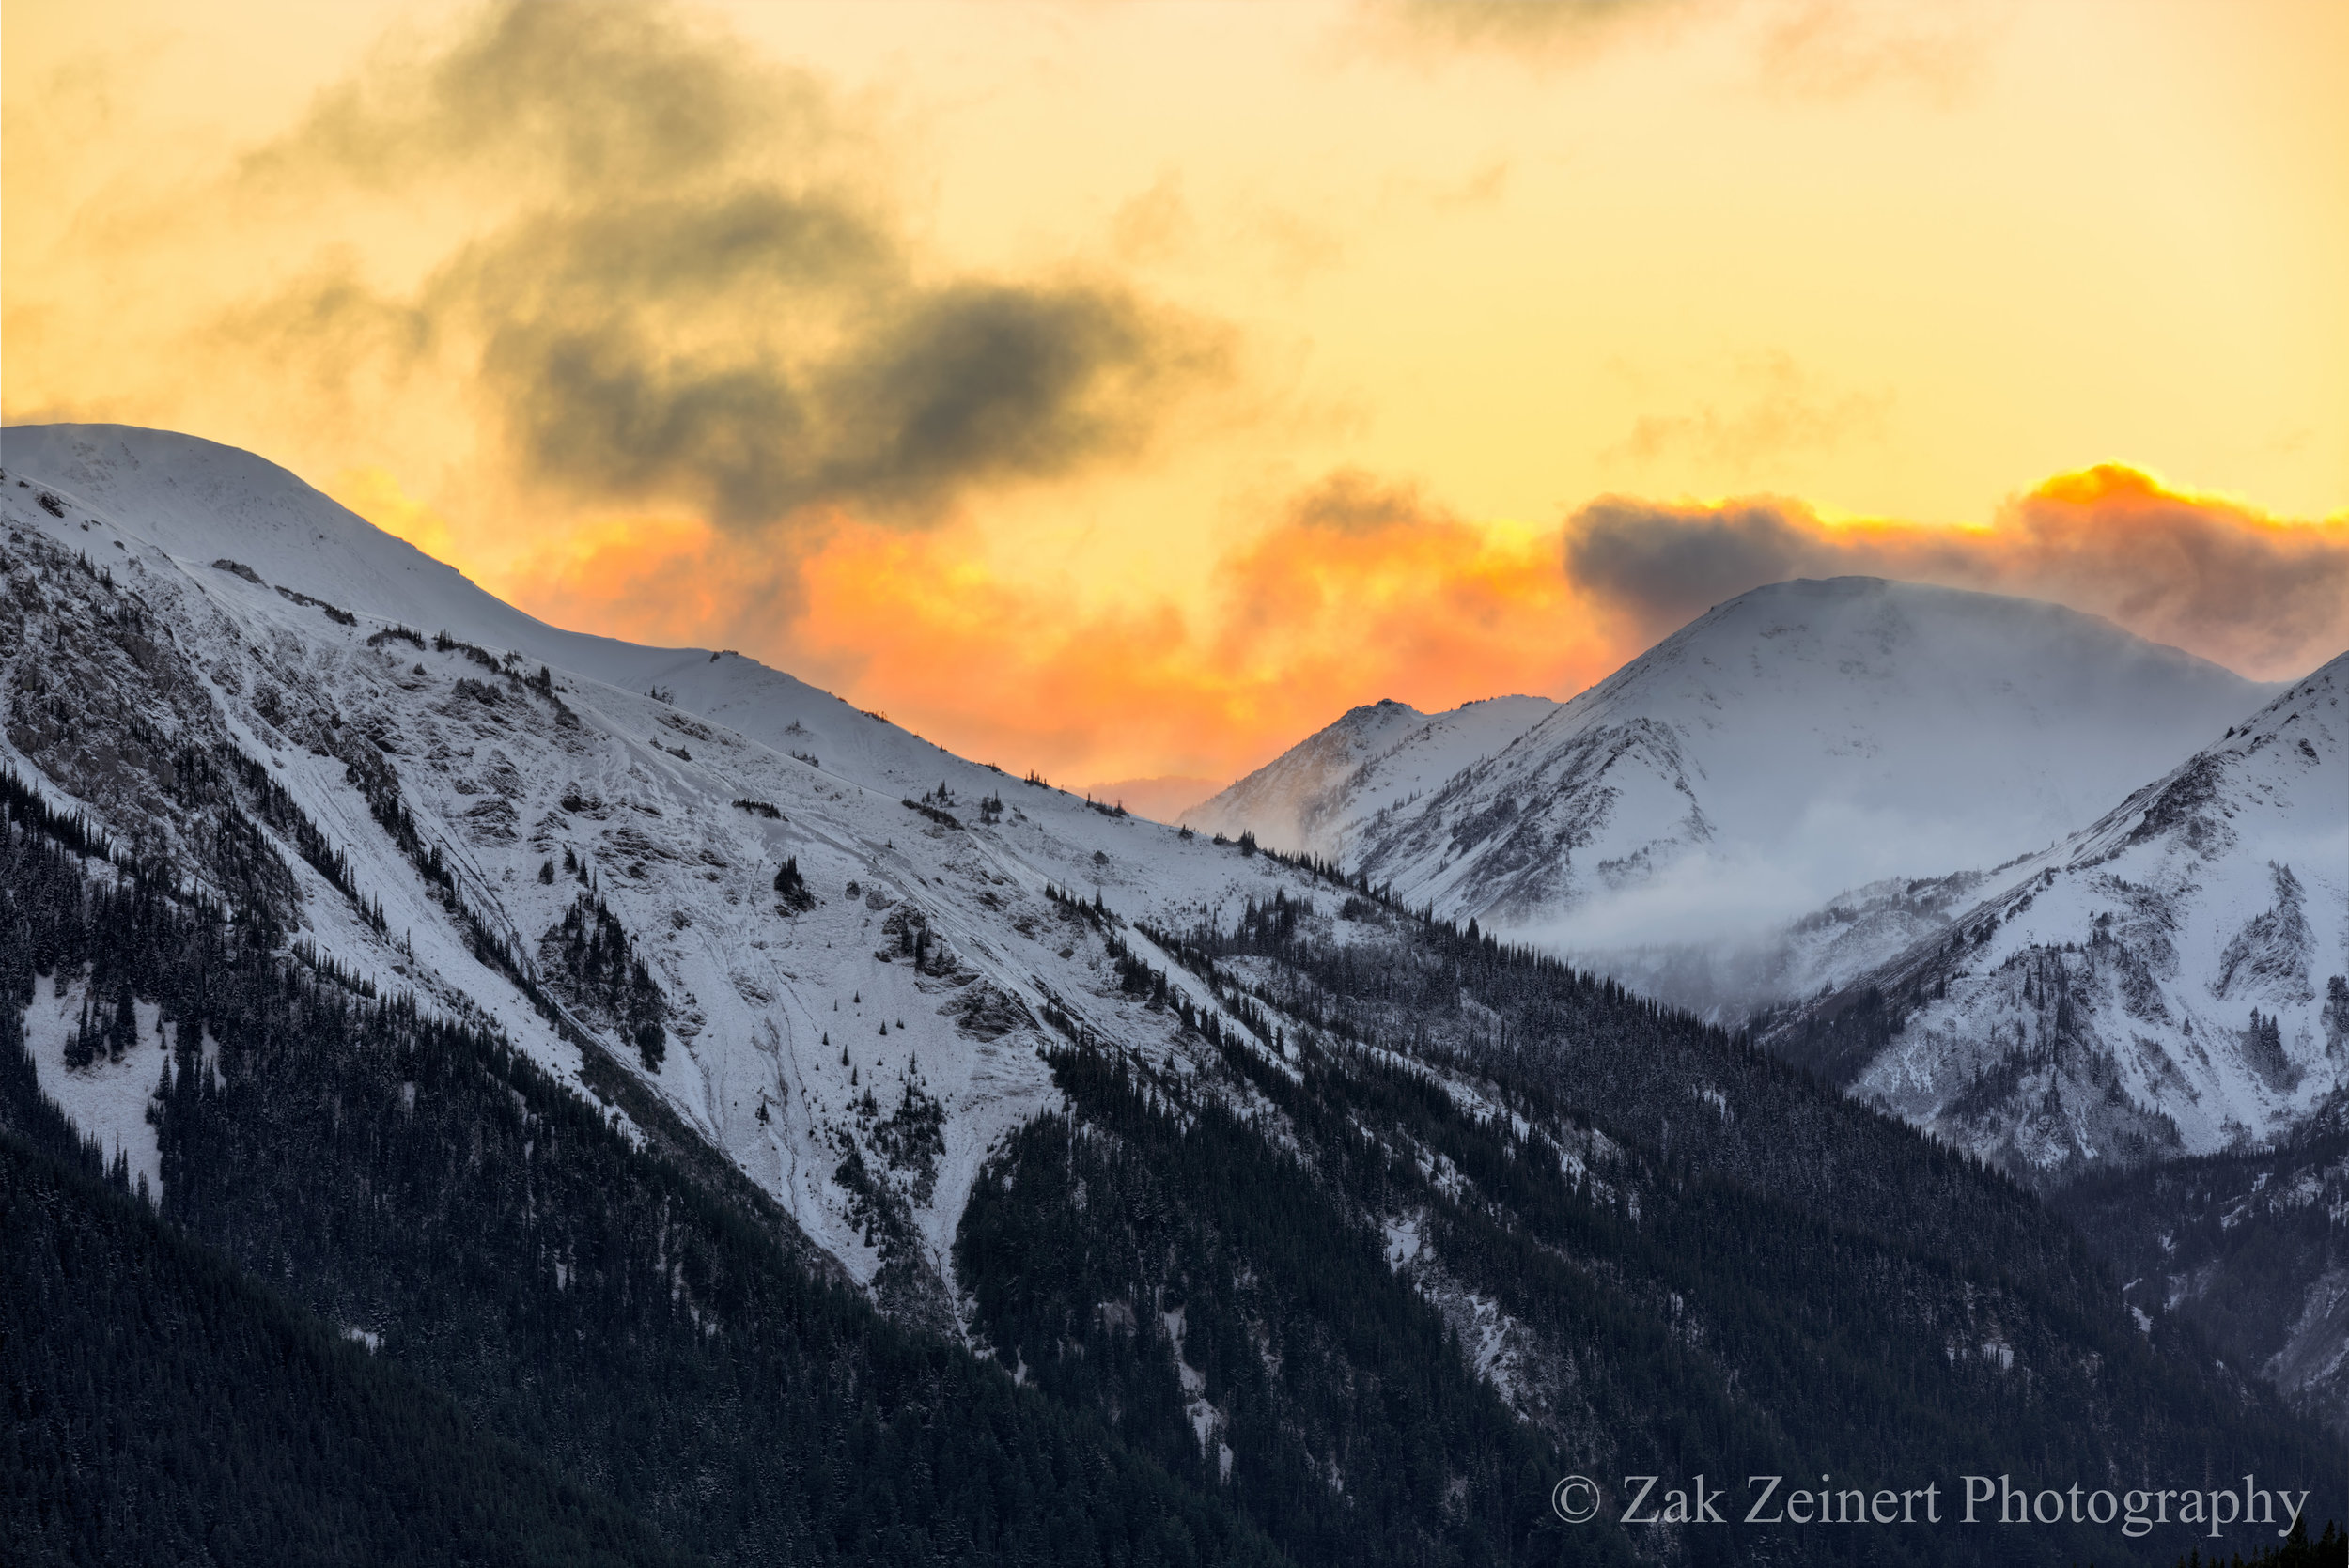 As sunset arrived, waves of orange and yellow fog rolled in, making the mountains seem on fire.